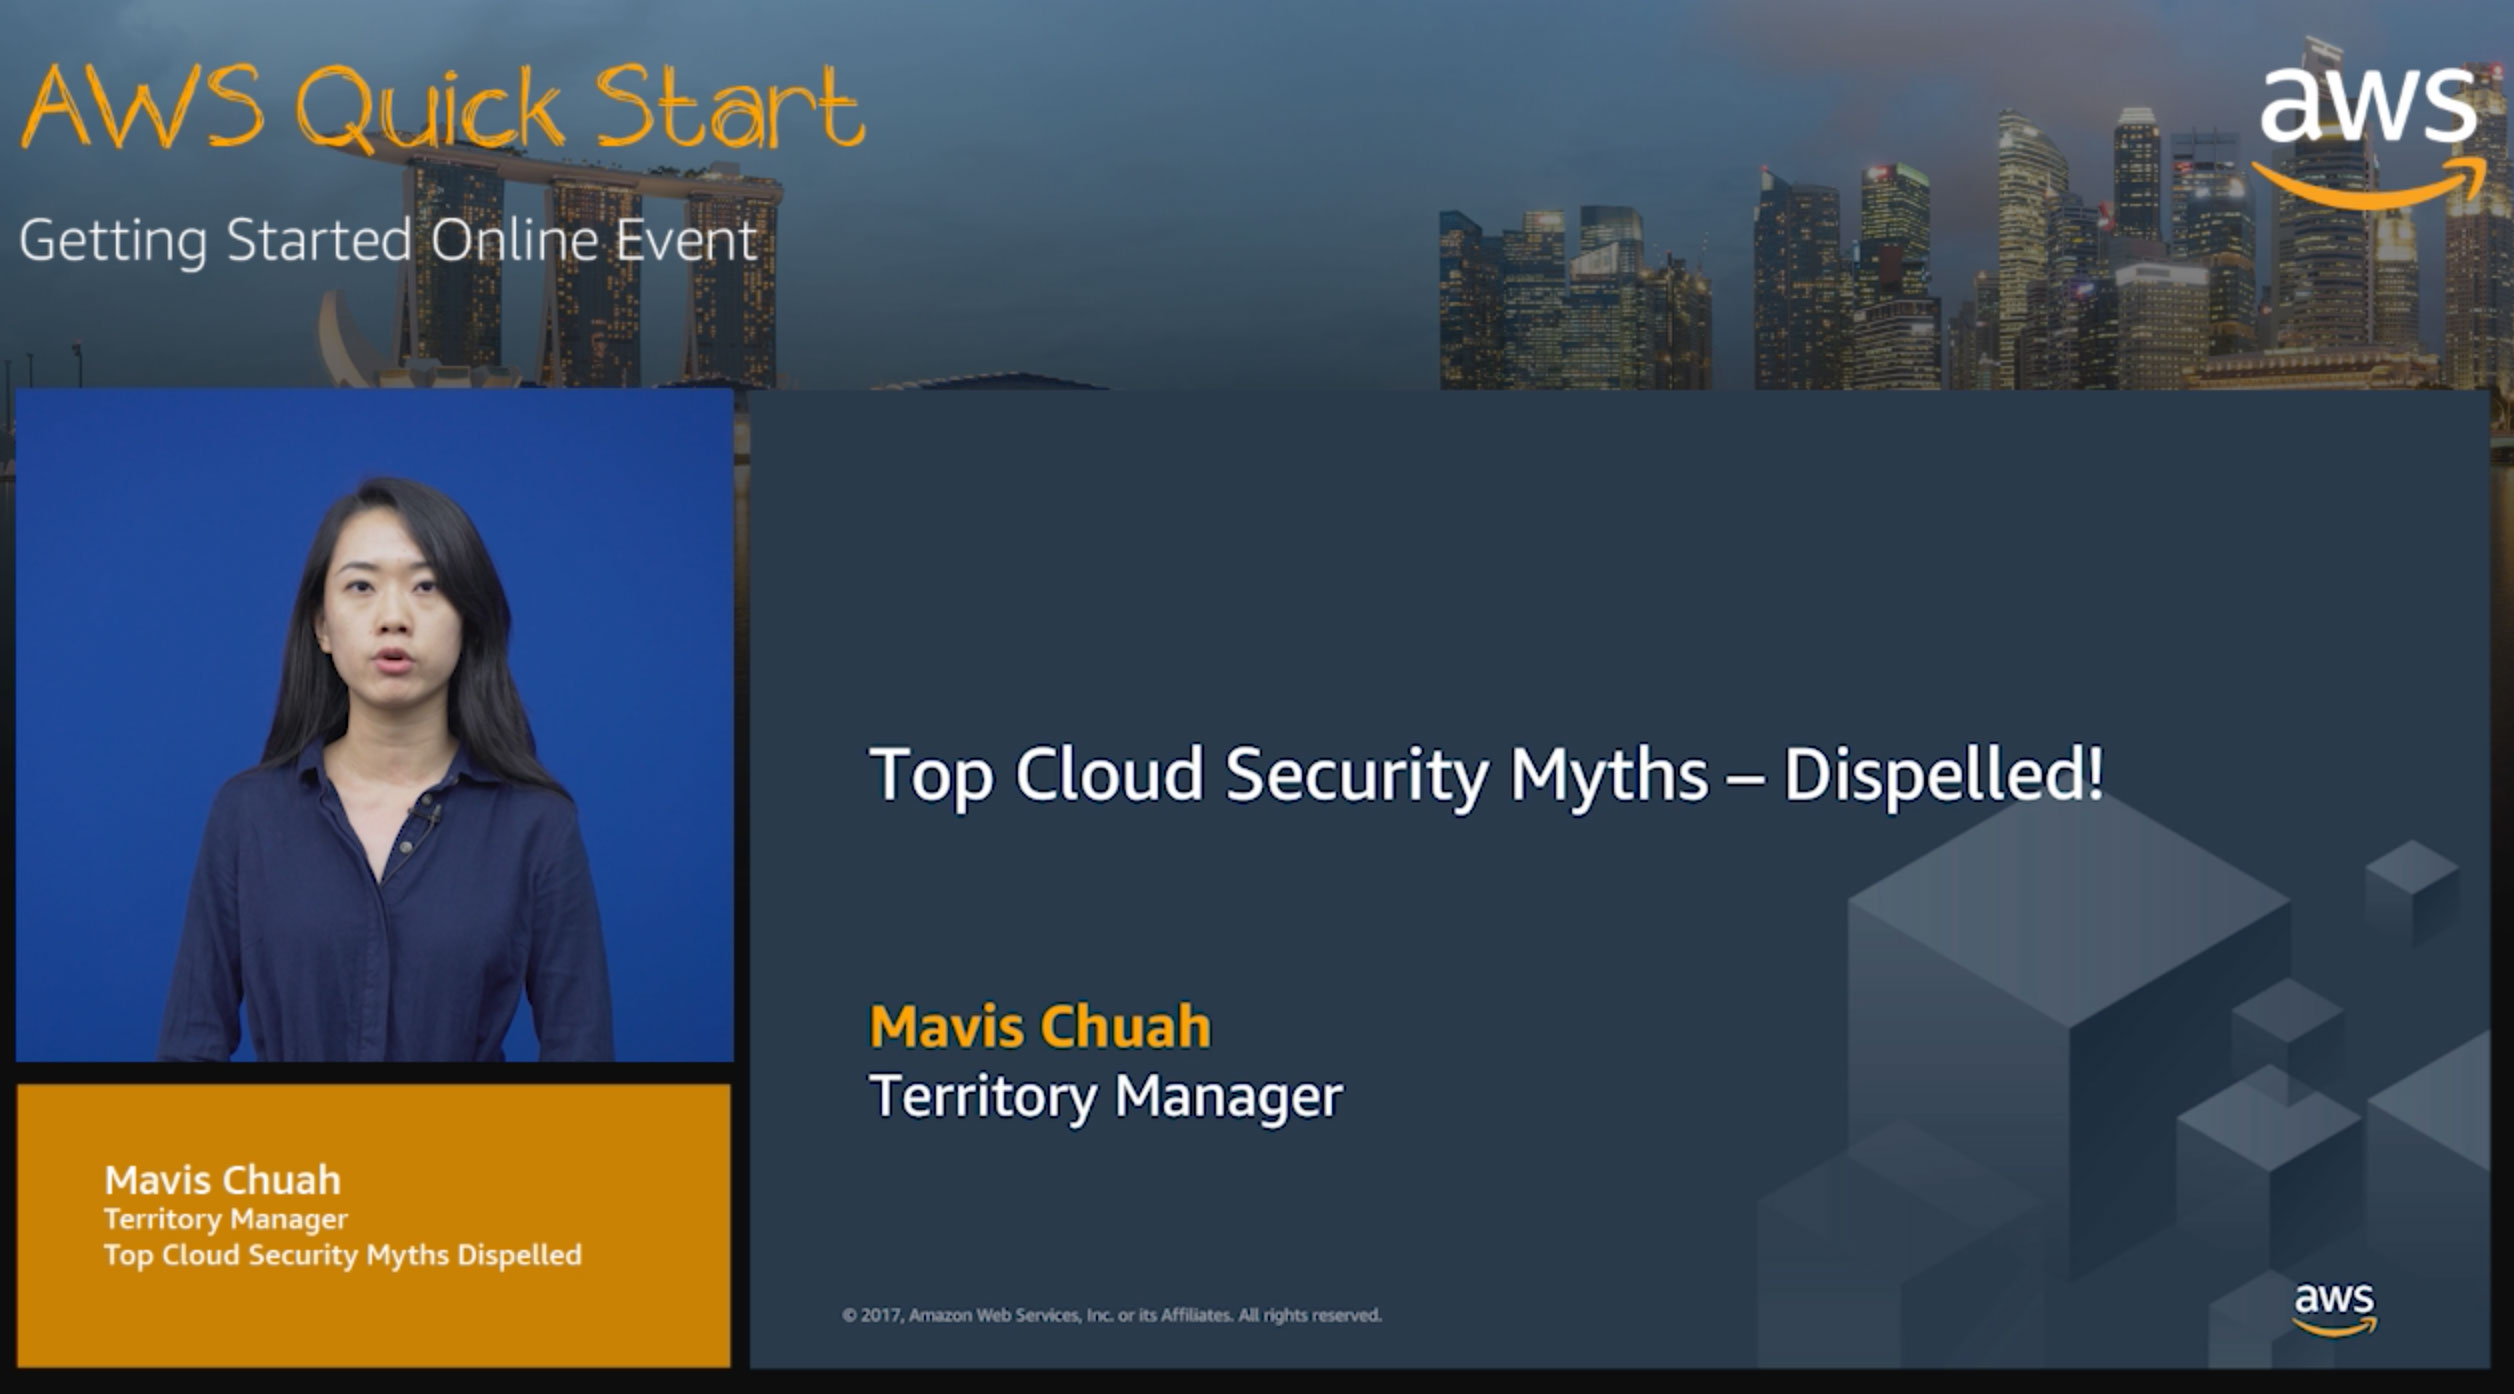 L100: Top Cloud Security Myths Dispelled